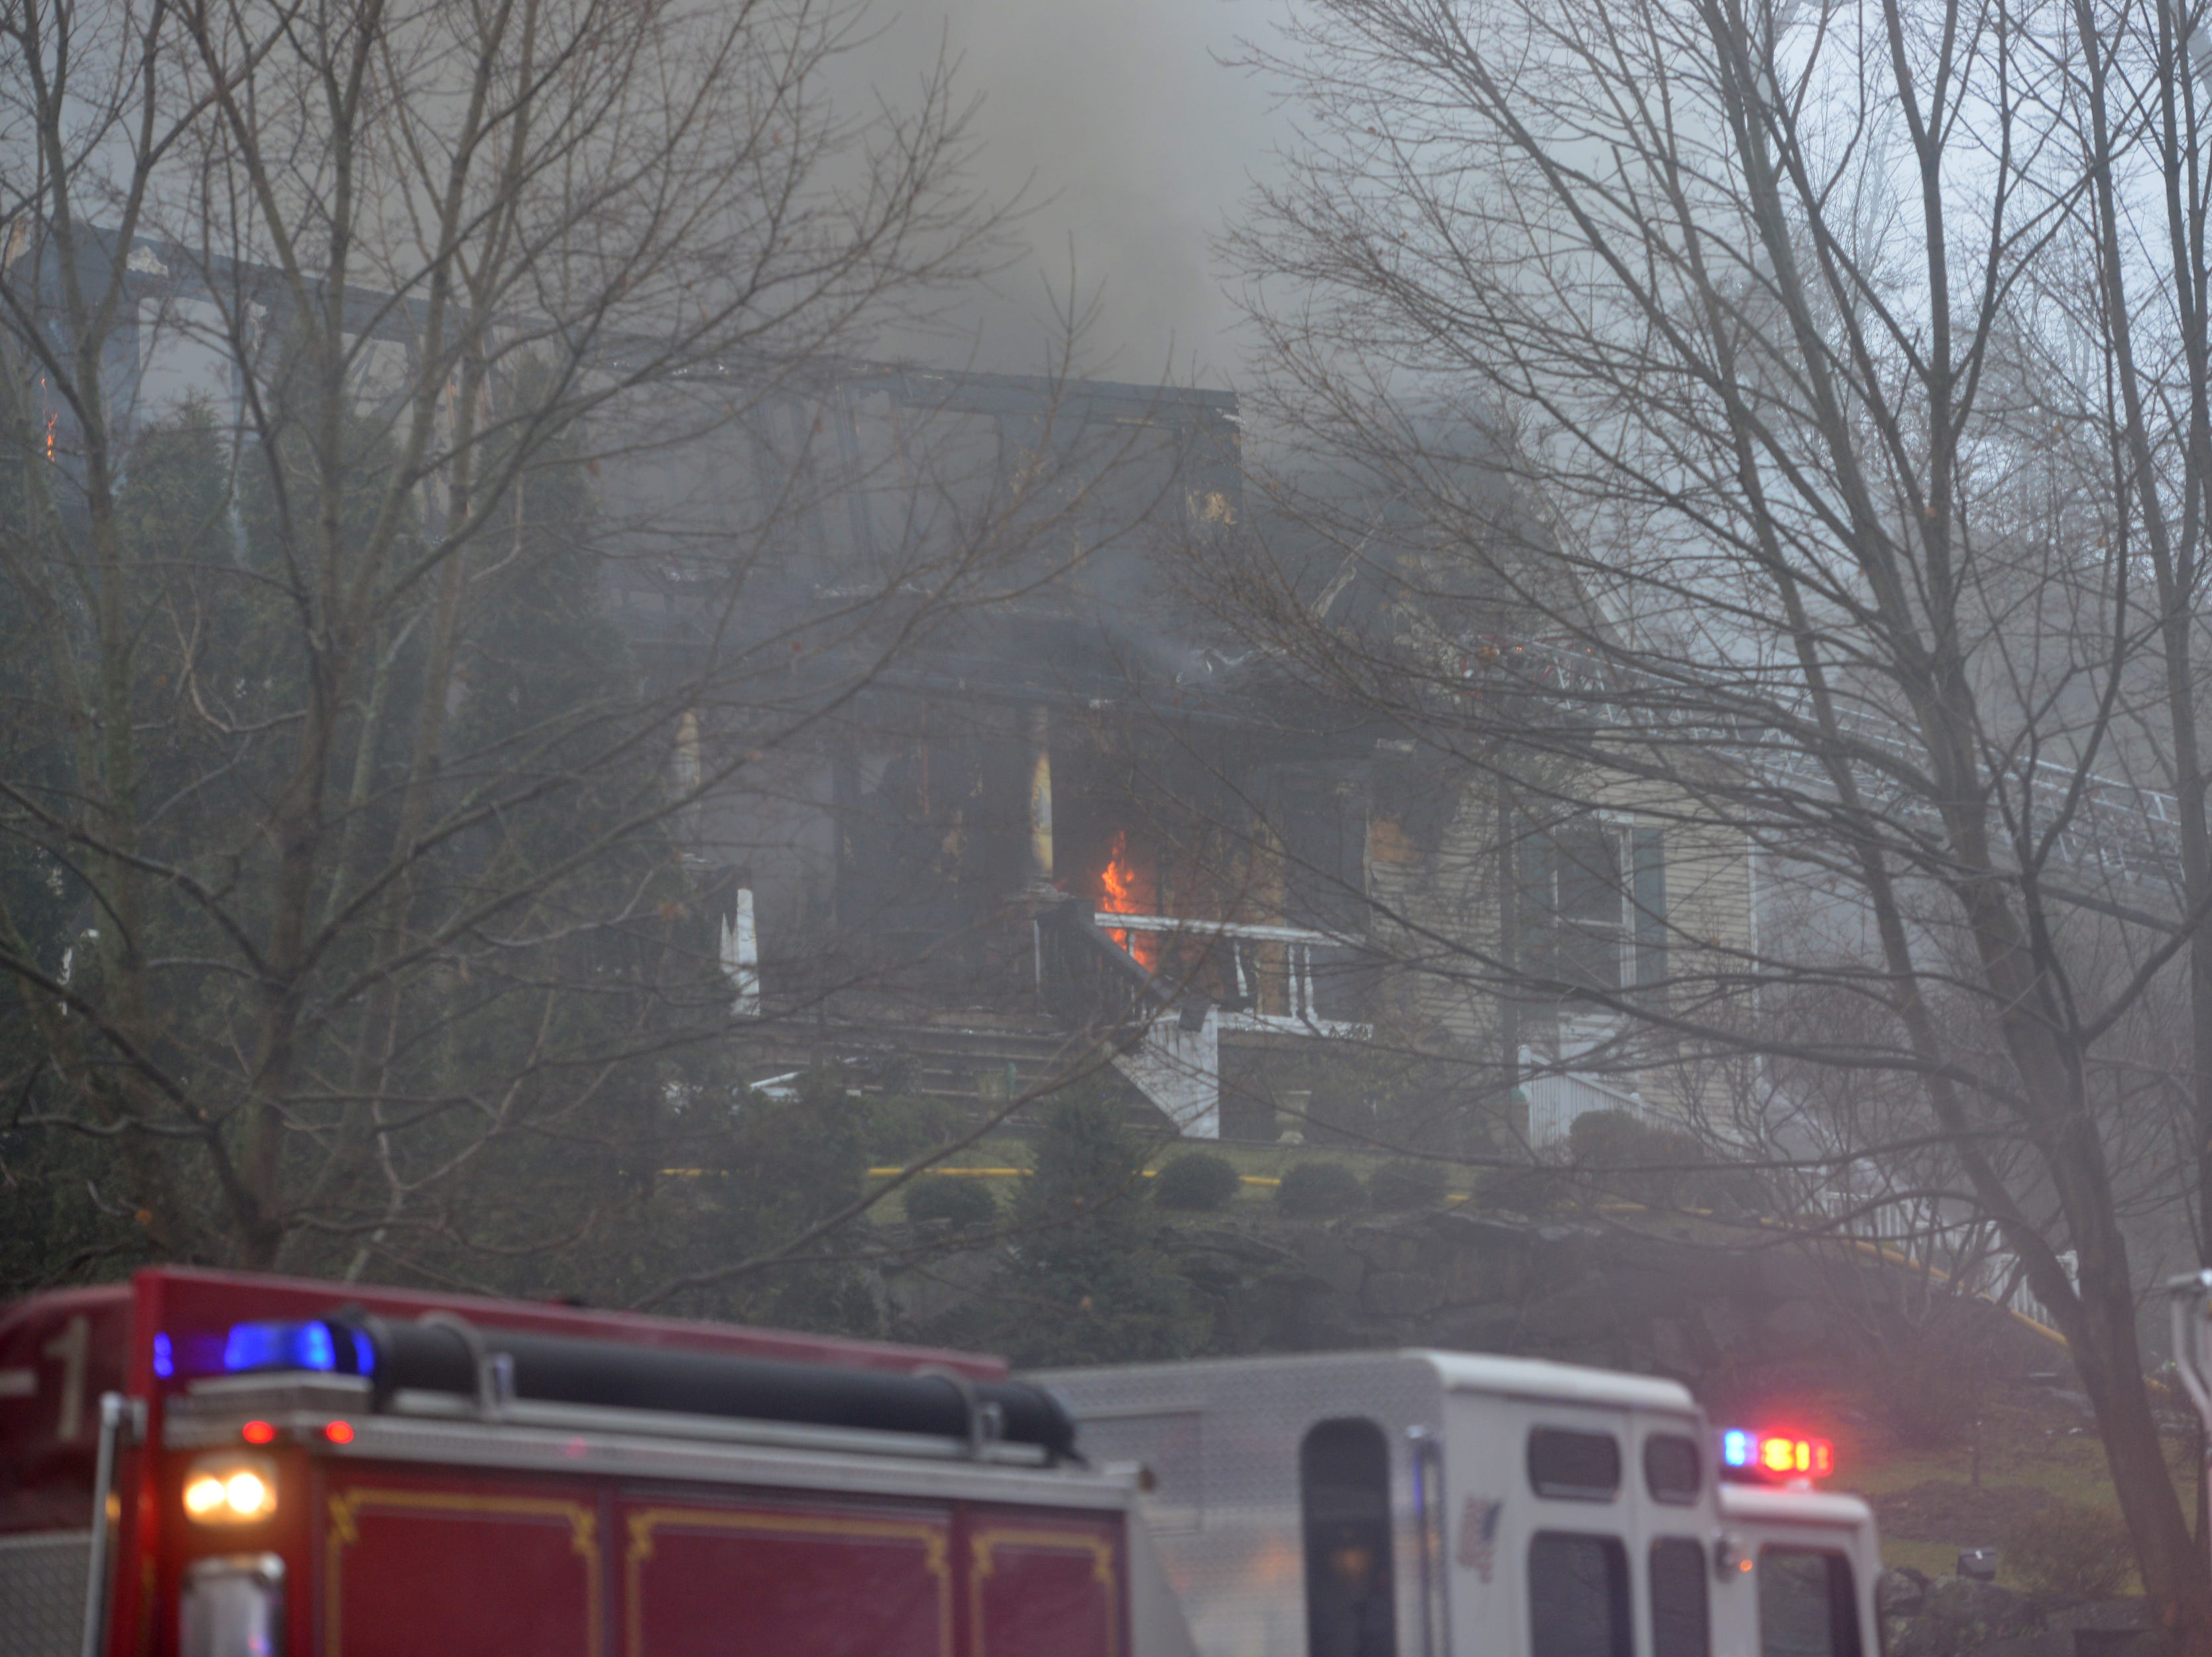 A fire rages at a home on Skyview Rd in Wayne, on Tuesday January 8, 2019.